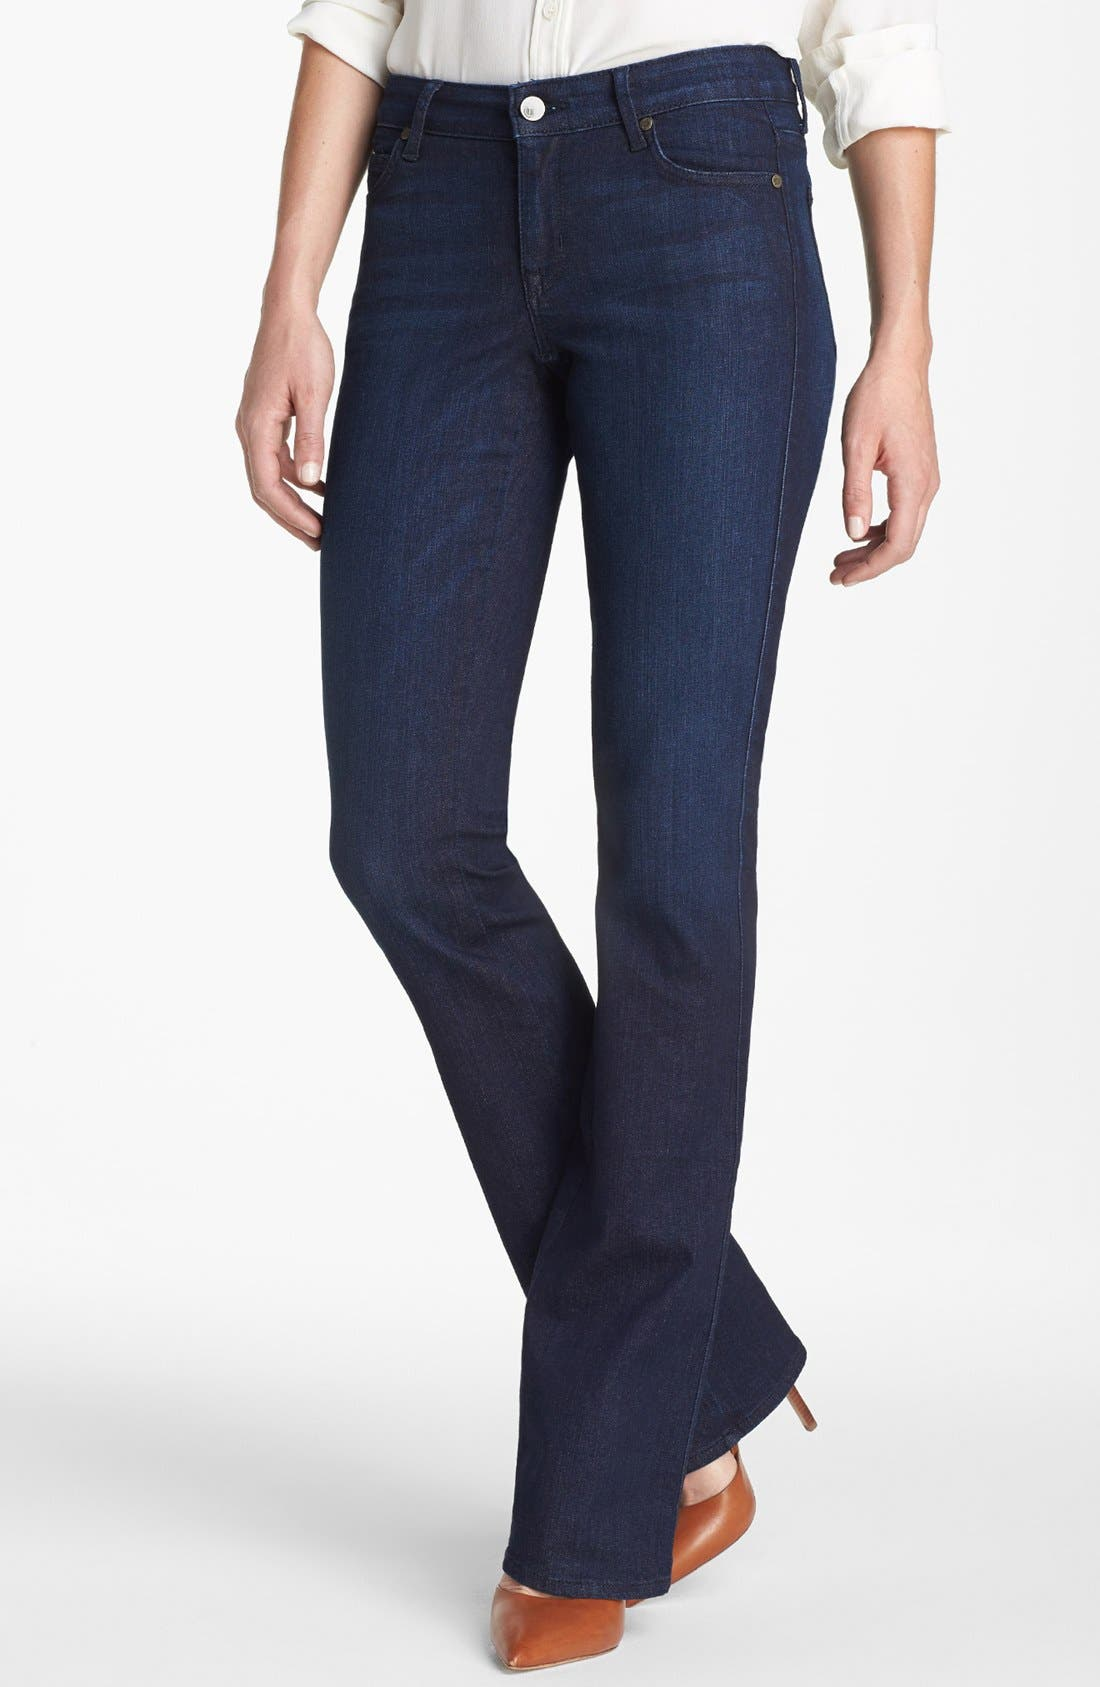 Alternate Image 1 Selected - CJ by Cookie Johnson 'Life' Baby Bootcut Jeans